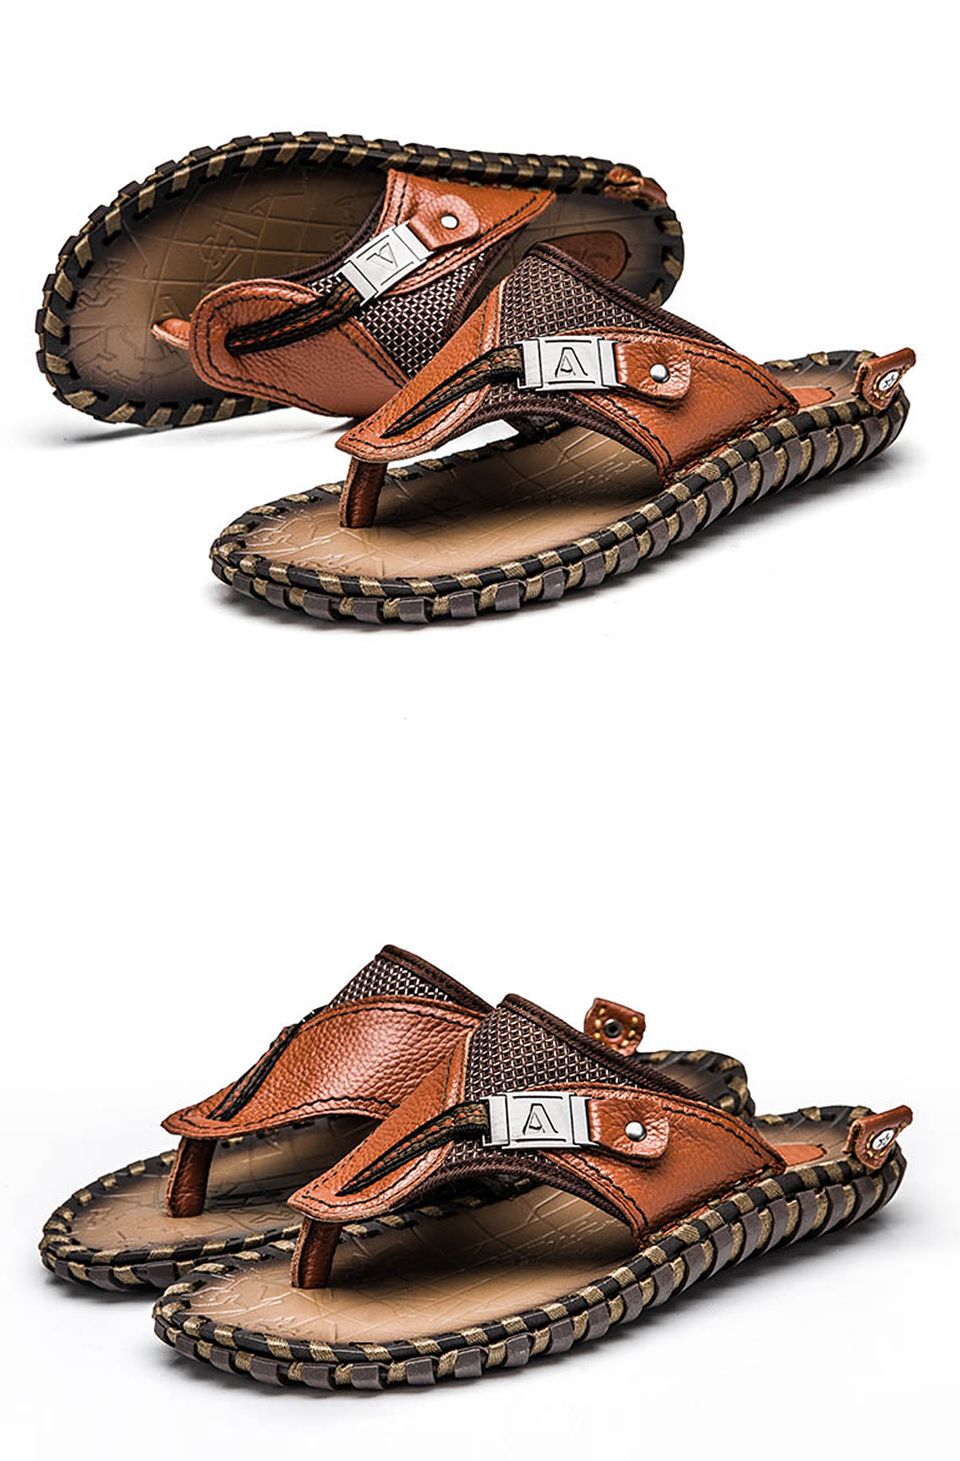 HTB1kVg8LQvoK1RjSZPfq6xPKFXae - VRYHEID Brand Men's Flip Flops Genuine Leather Luxury Slippers Beach Casual Sandals Summer for Men Fashion Shoes New Big Size 48